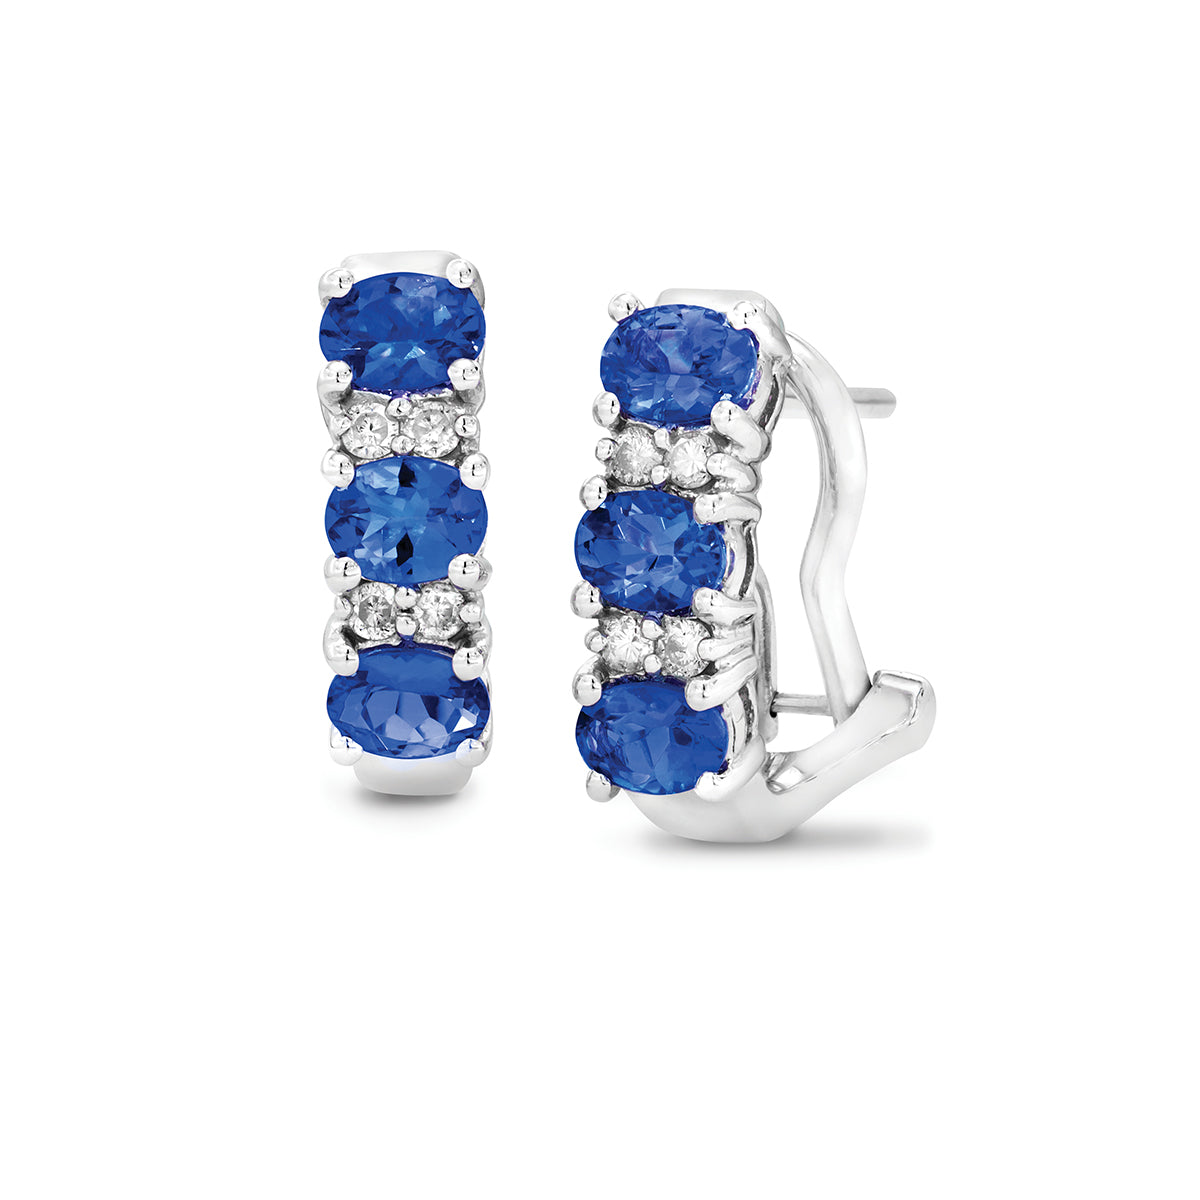 Safi Kilima Tanzanite & Diamond Earrings in Sterling Silver (1.05 ctw)